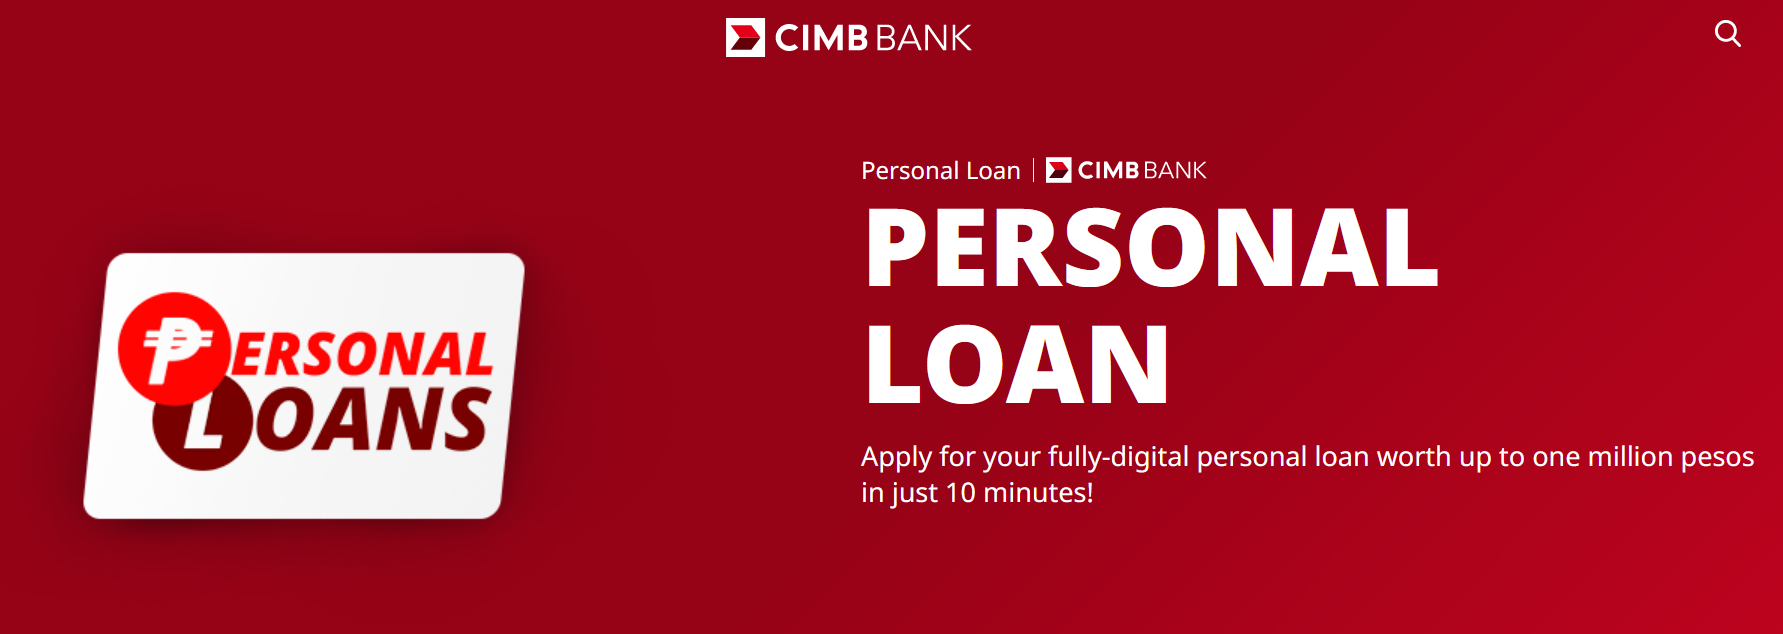 how to apply for a CIMB personal loan - what is cimb personal loan?